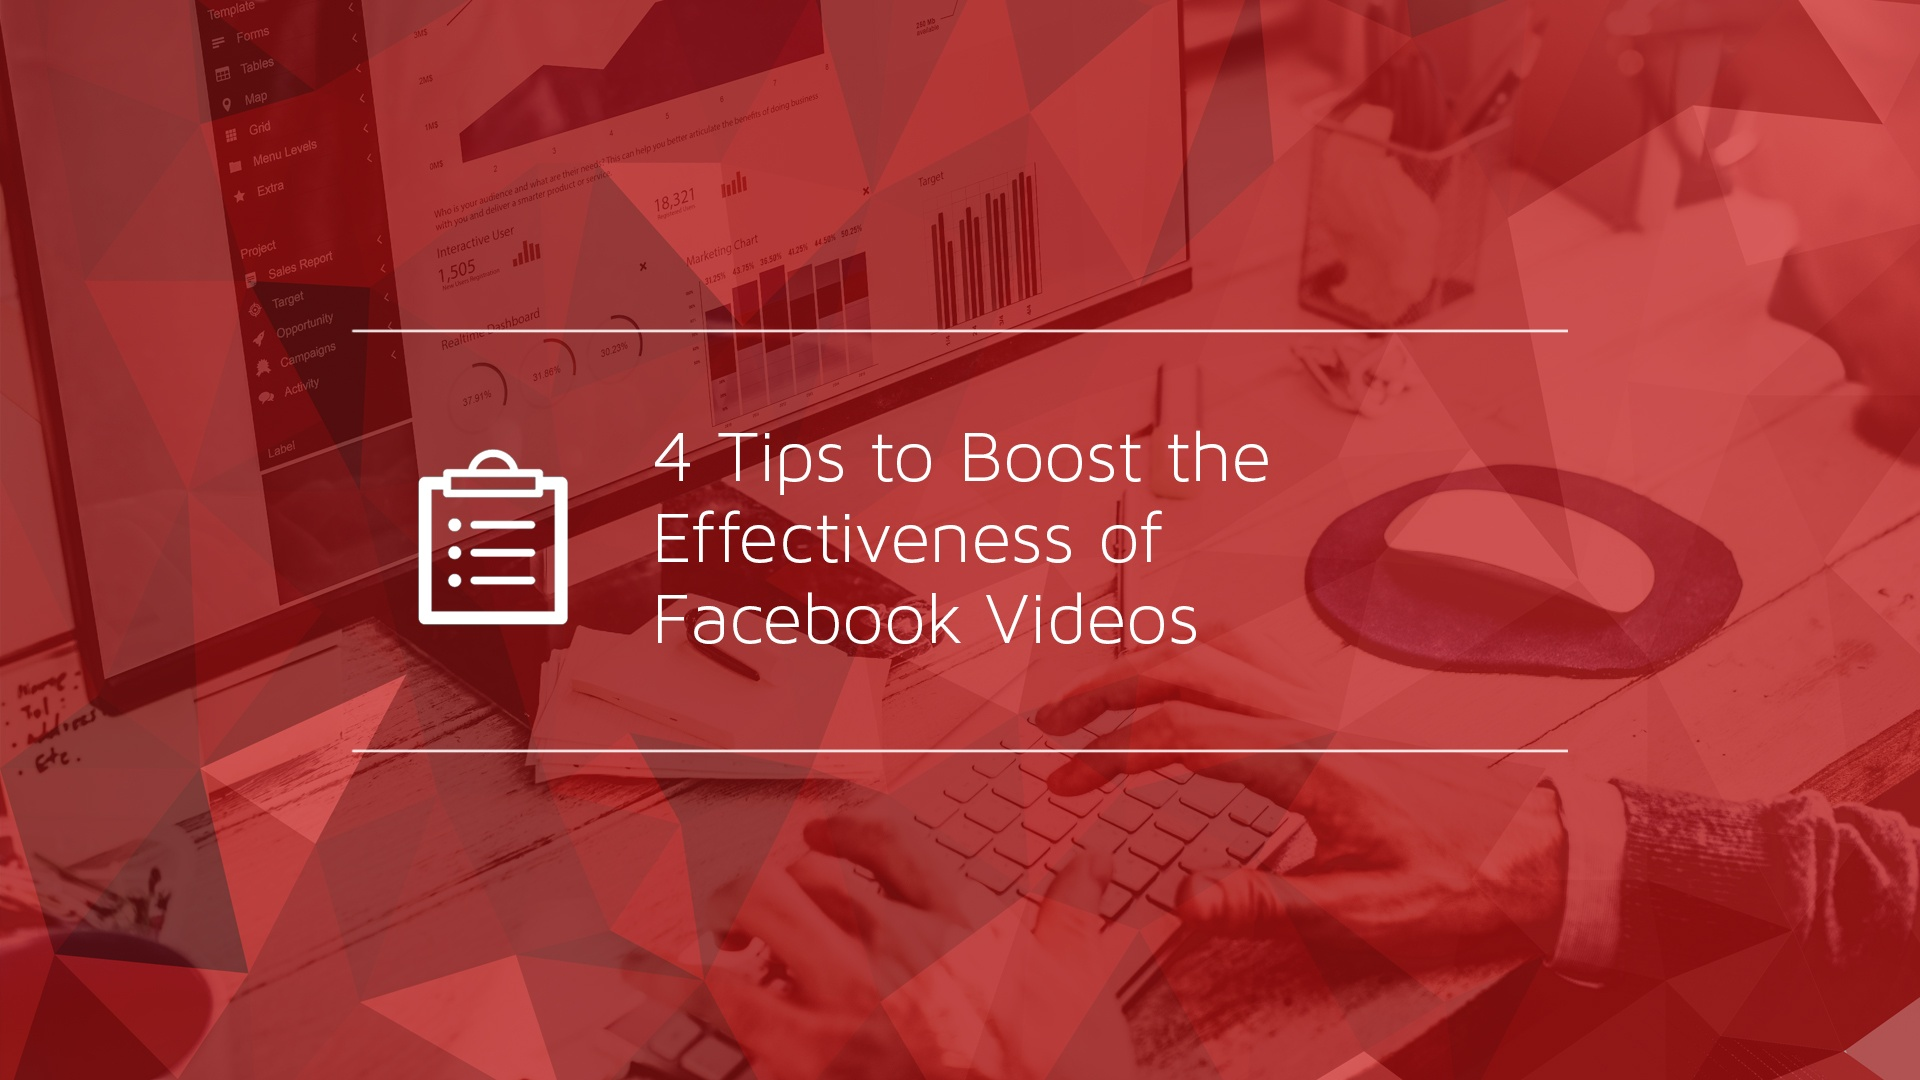 4 Tips to Boost the Effectiveness of Facebook Videos.jpg